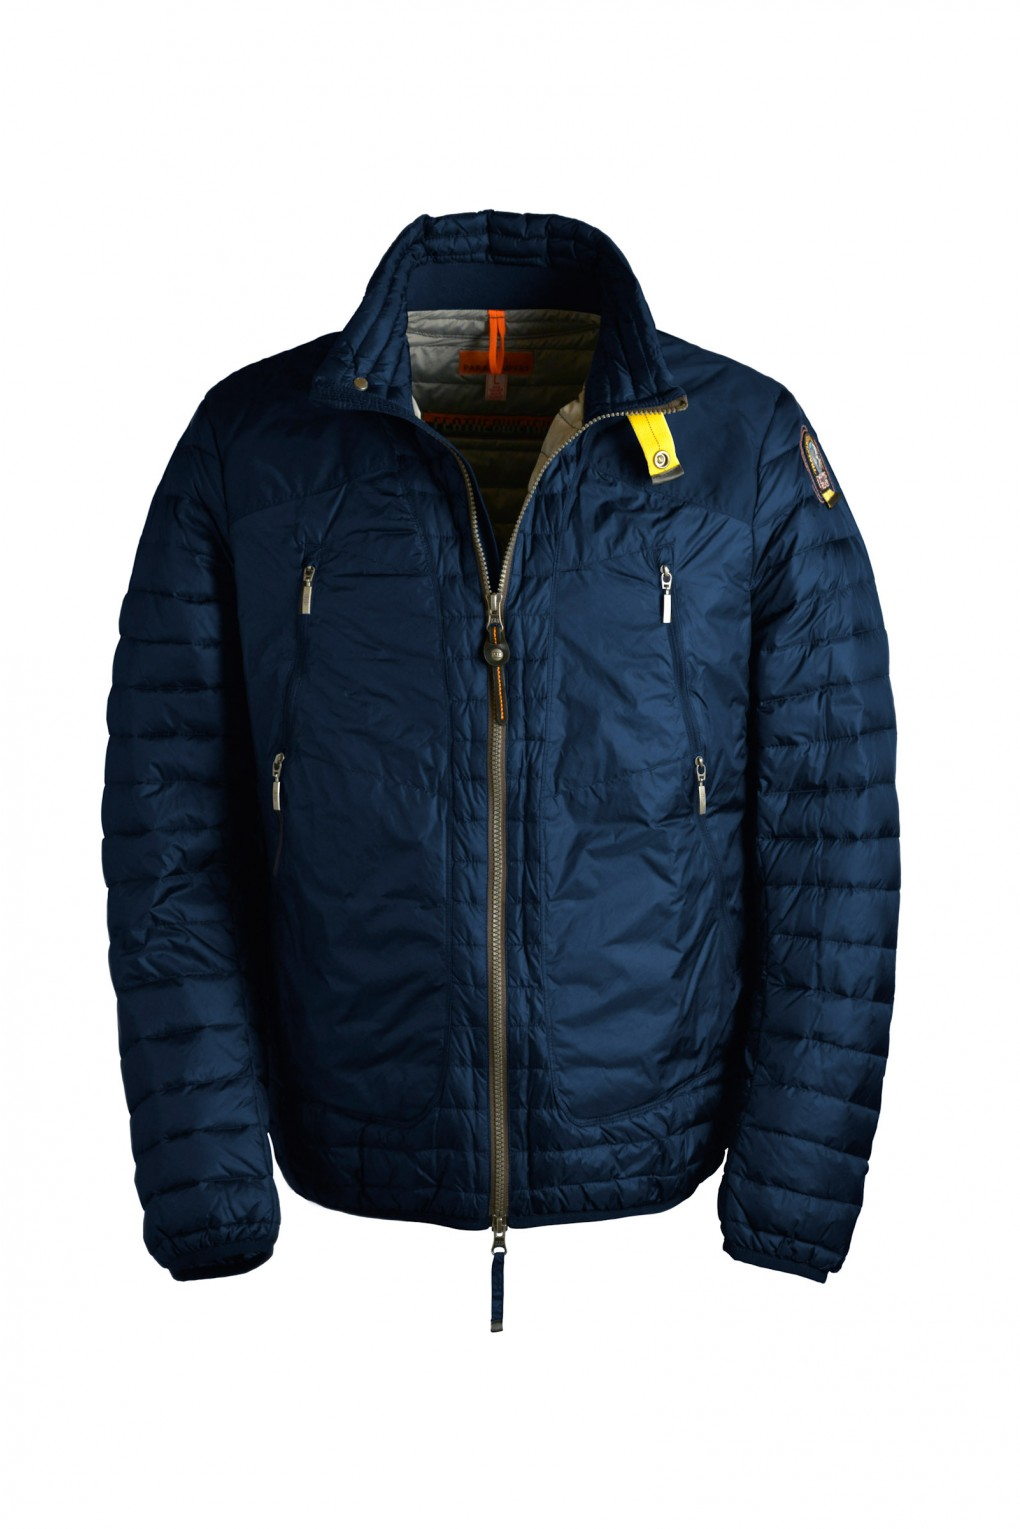 parajumpers GIULY man outerwear Ocean